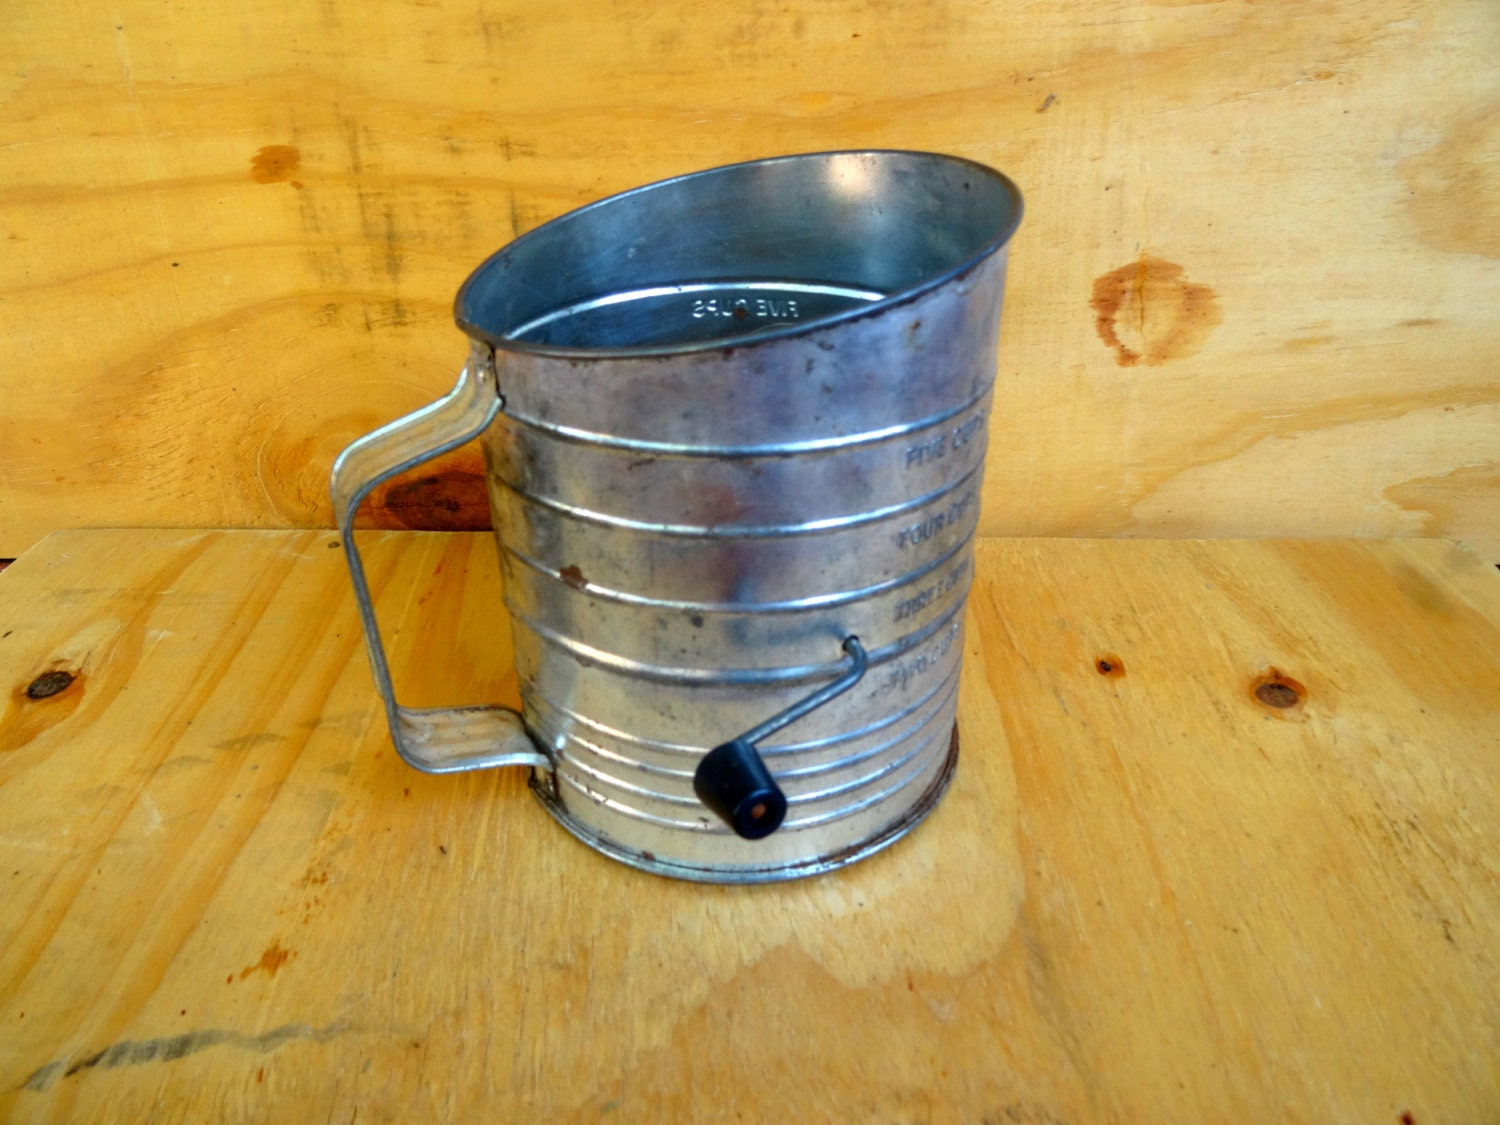 flour sifter - photo #45